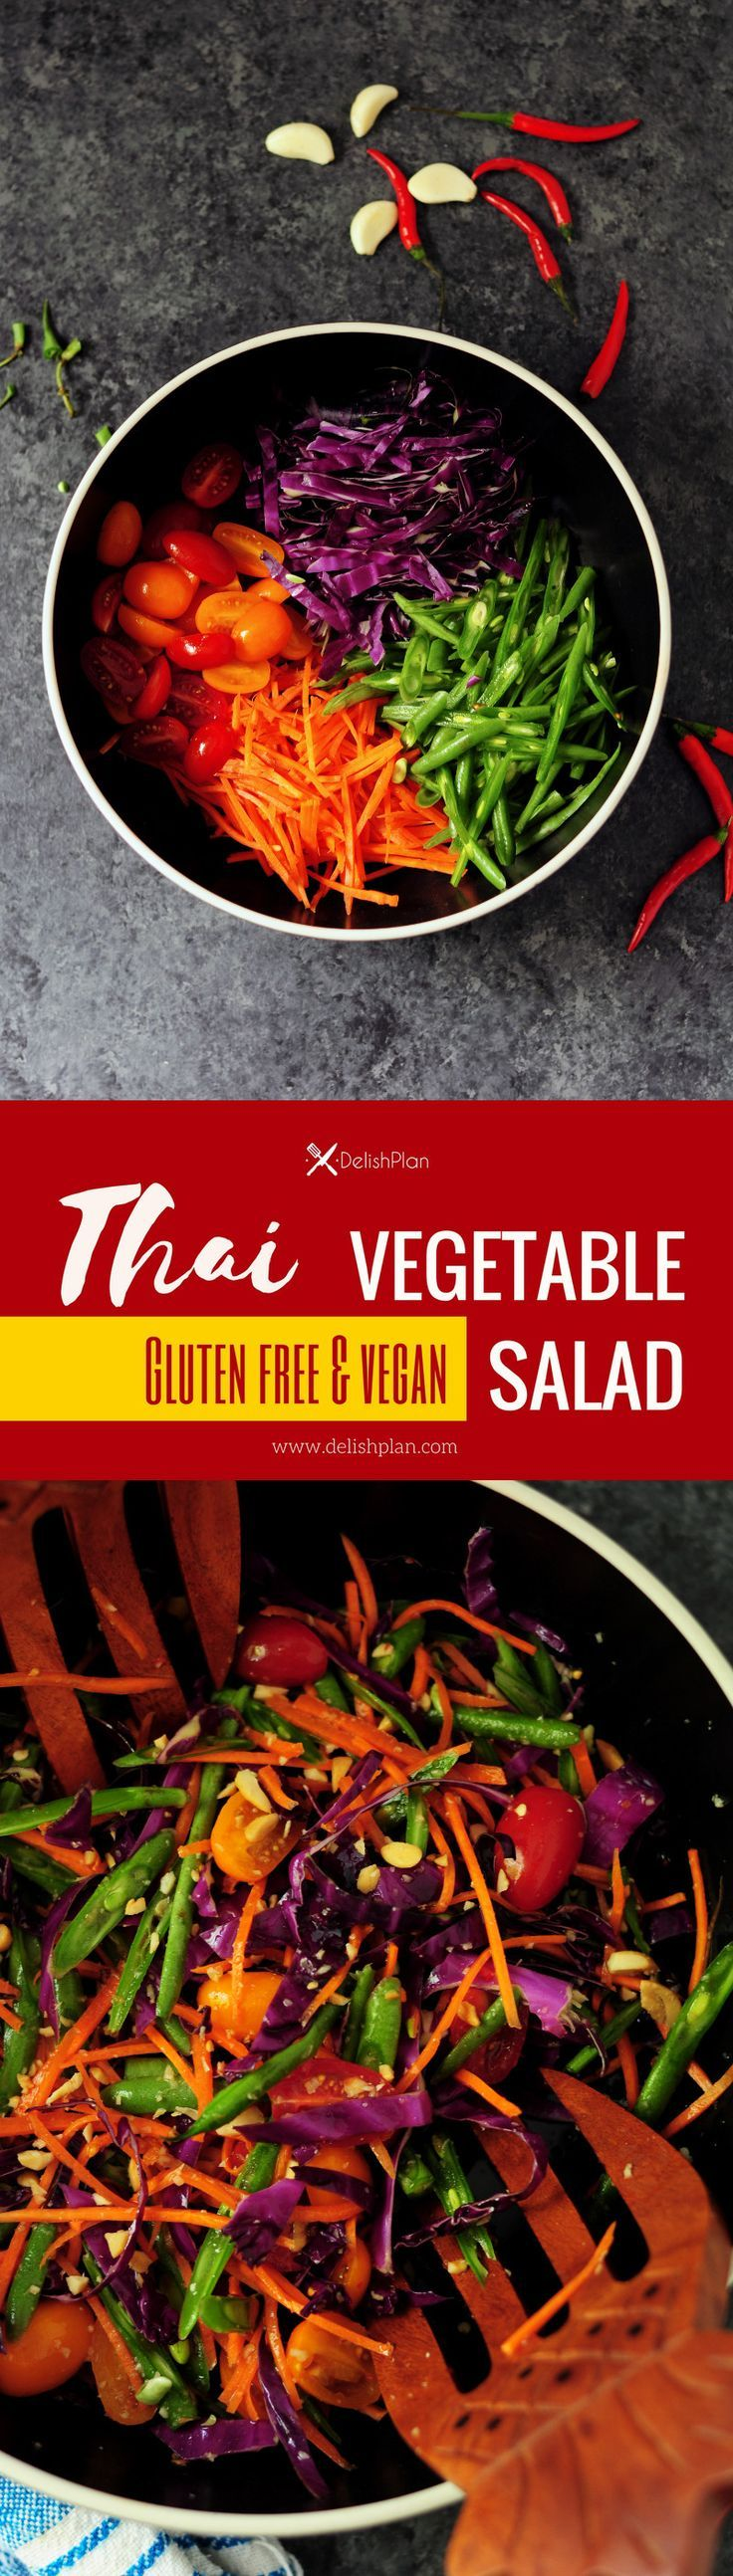 Inspired by Thai papaya salad, this simple vegetable salad features an authentic Thai flavor with a gentle kick. It's also made gluten free and vegan.